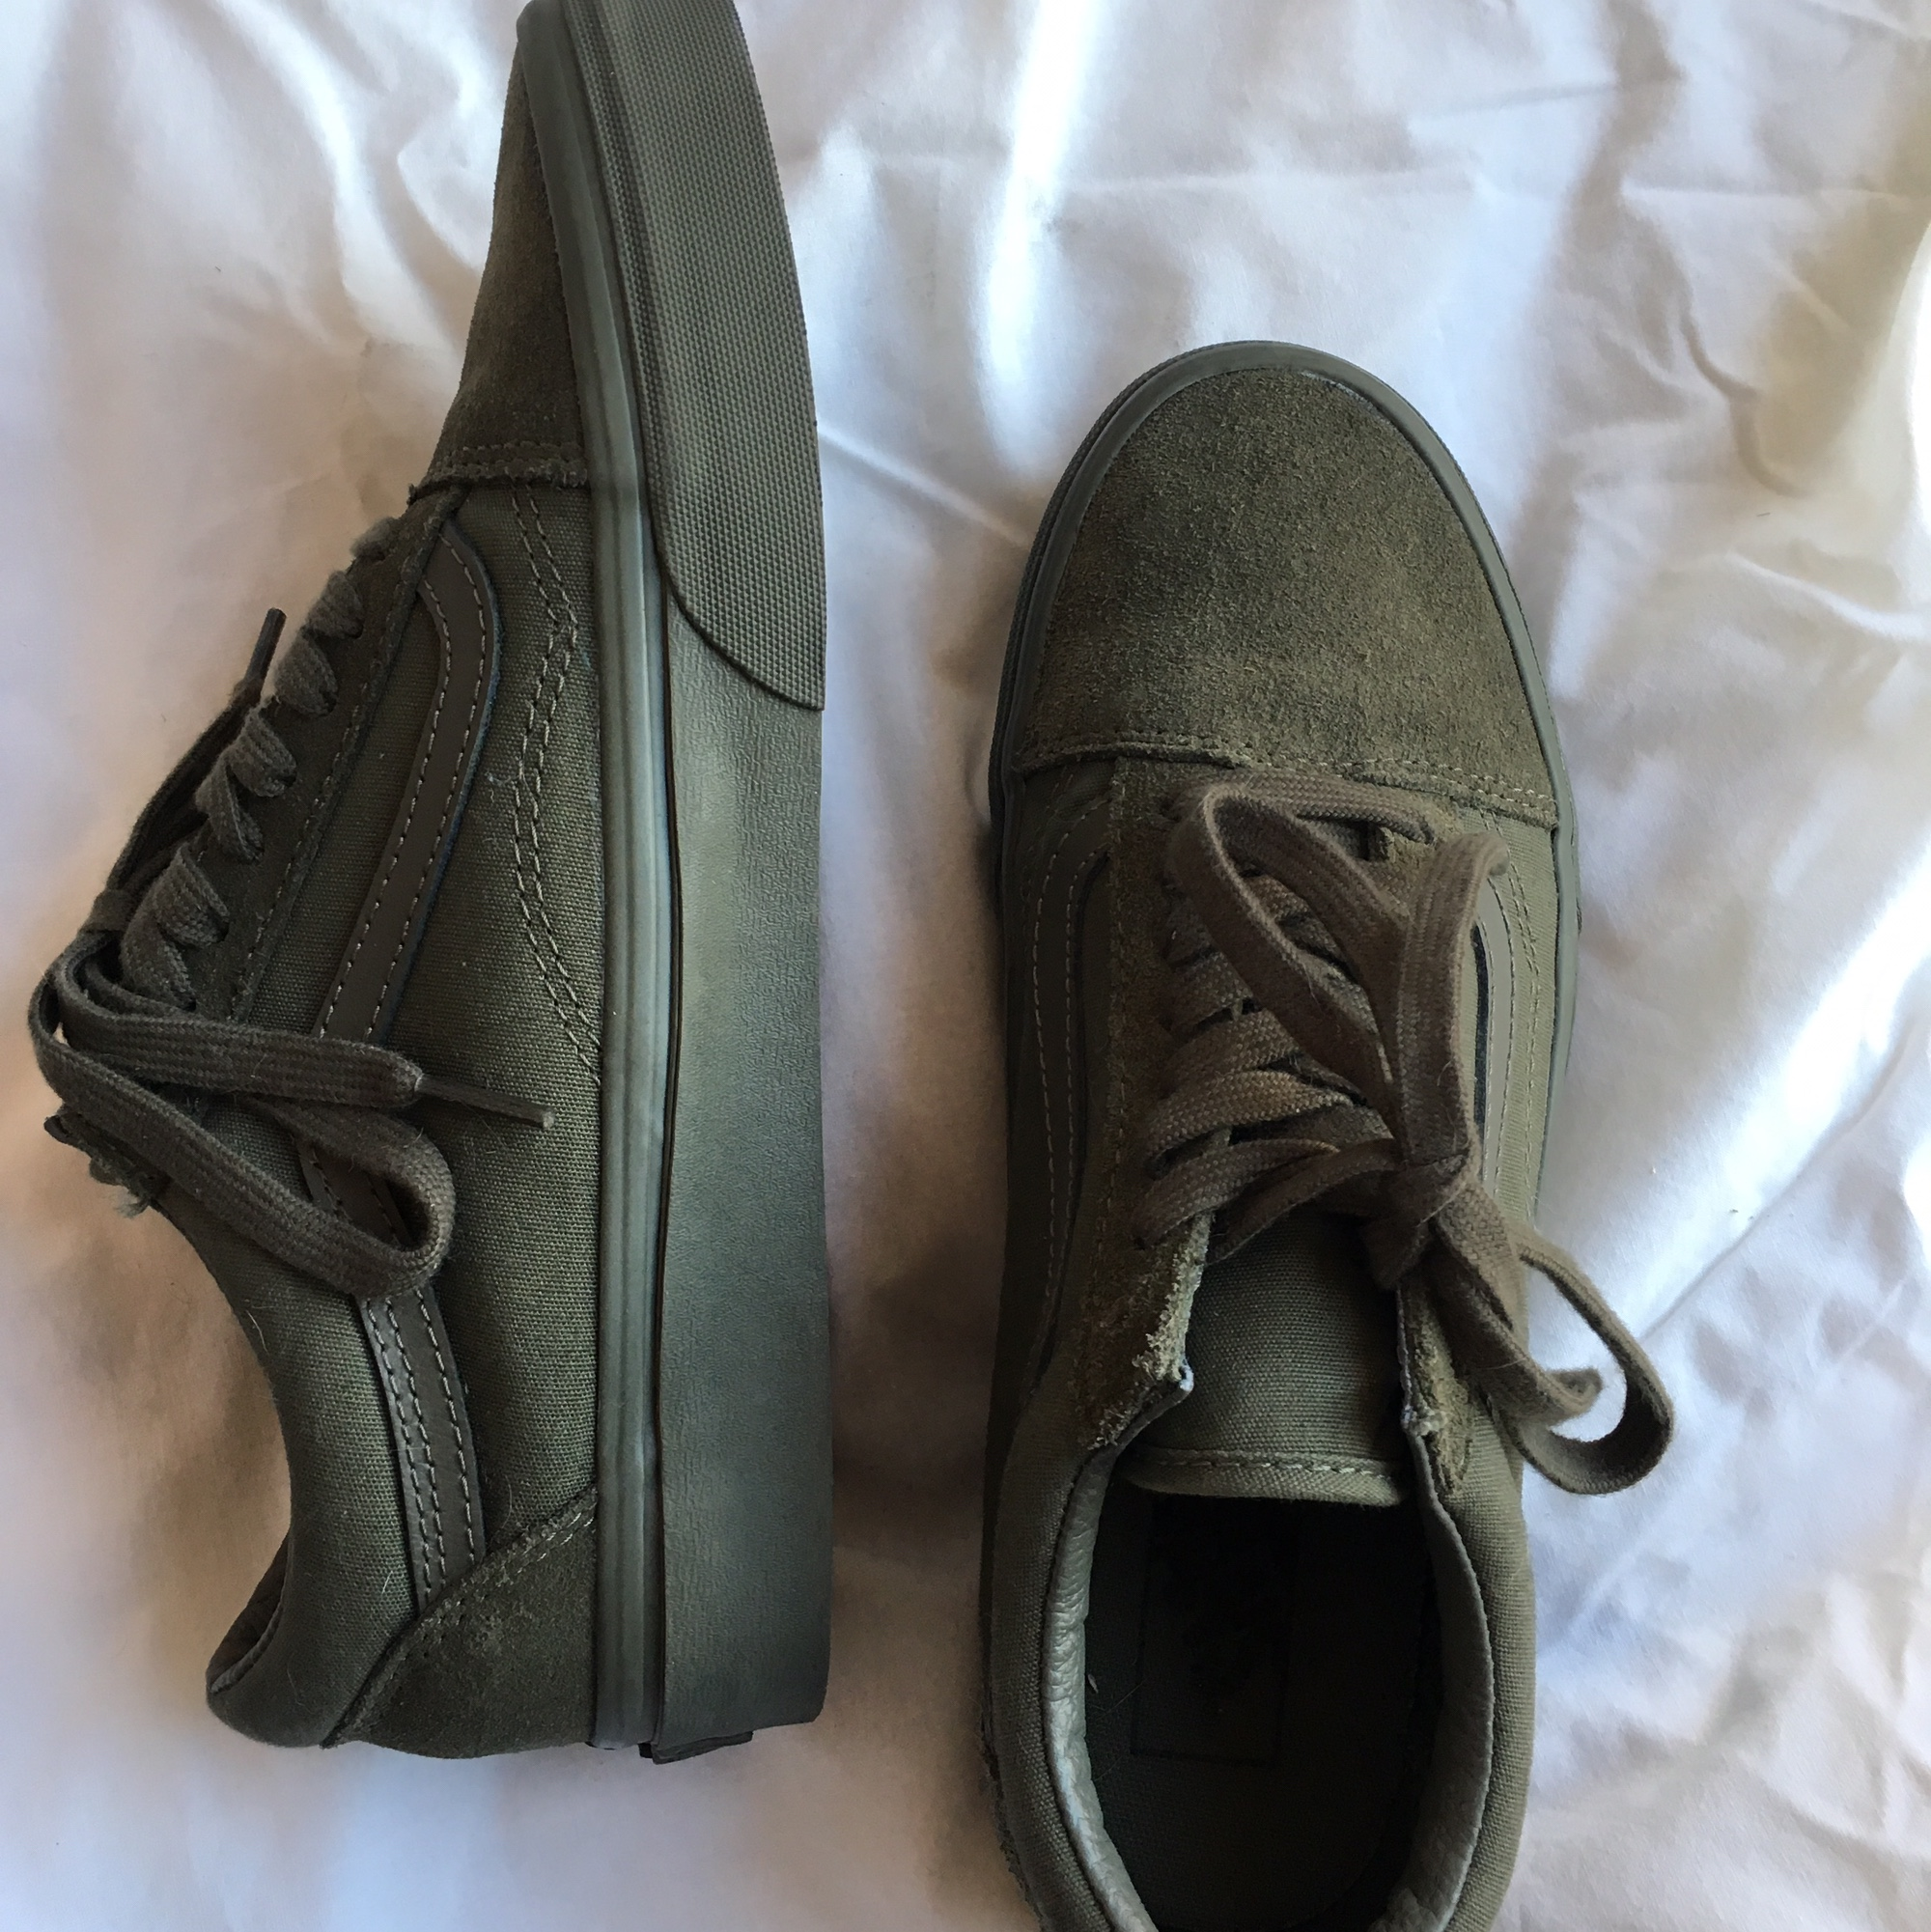 VANS old skool Mono canvas & suede olive    - Depop